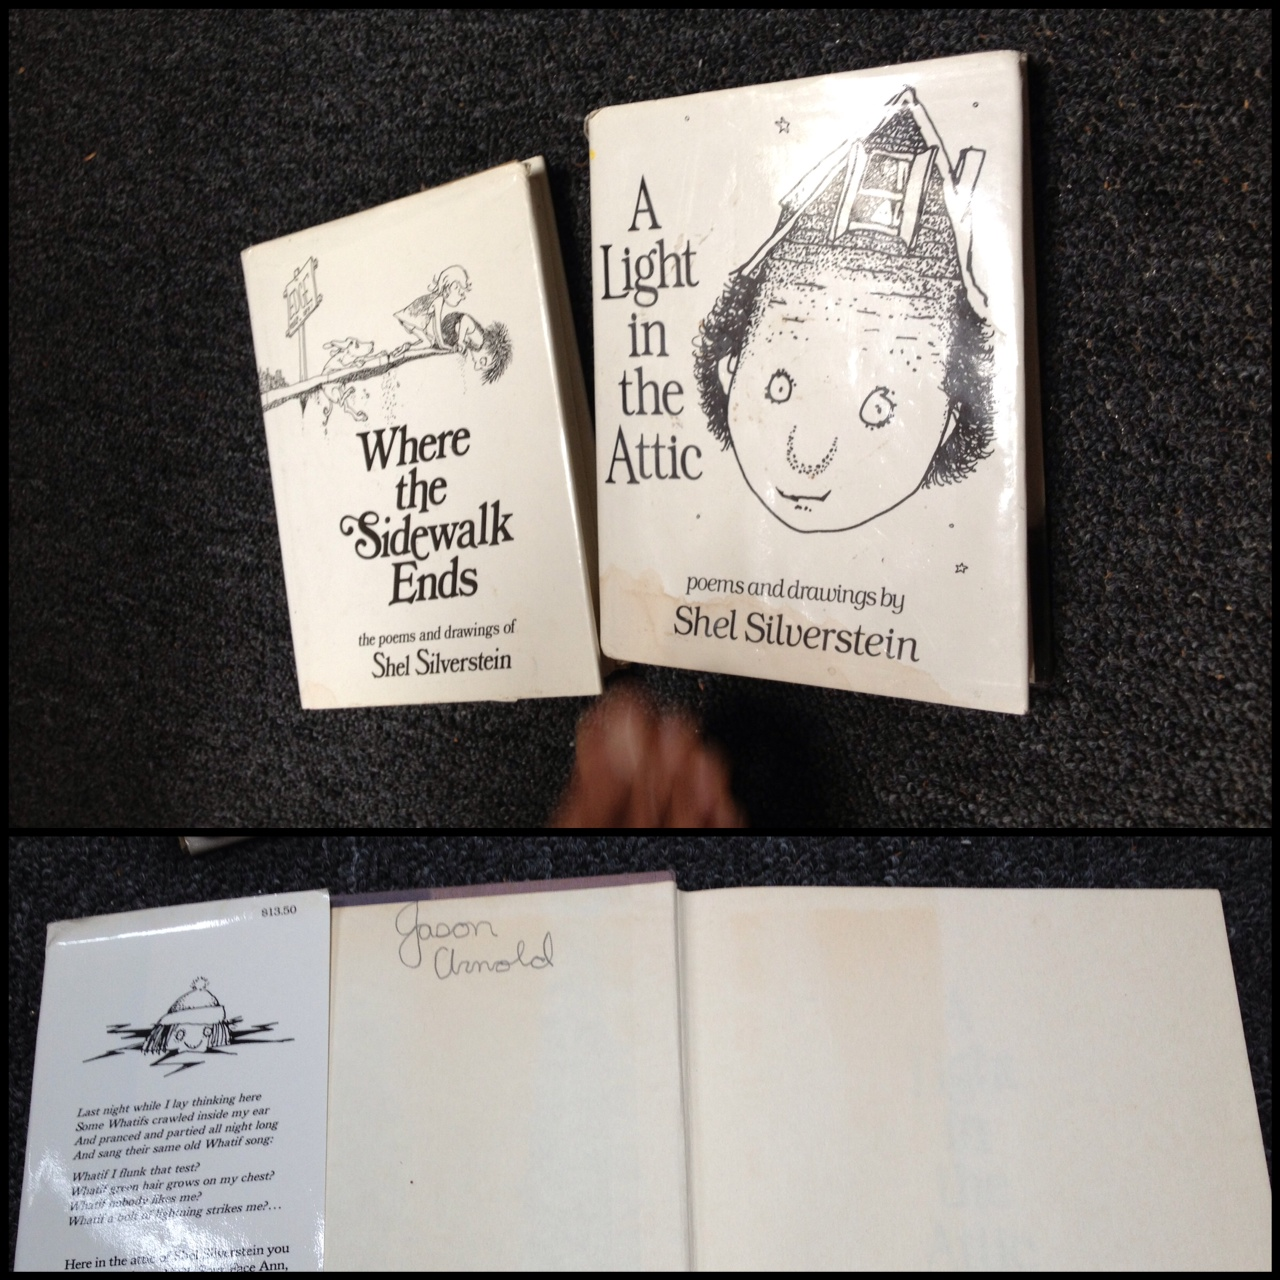 My Arm Is Dedicated To My Childhood Shel Silverstein Was: Creeping On My Friends' Books Part III